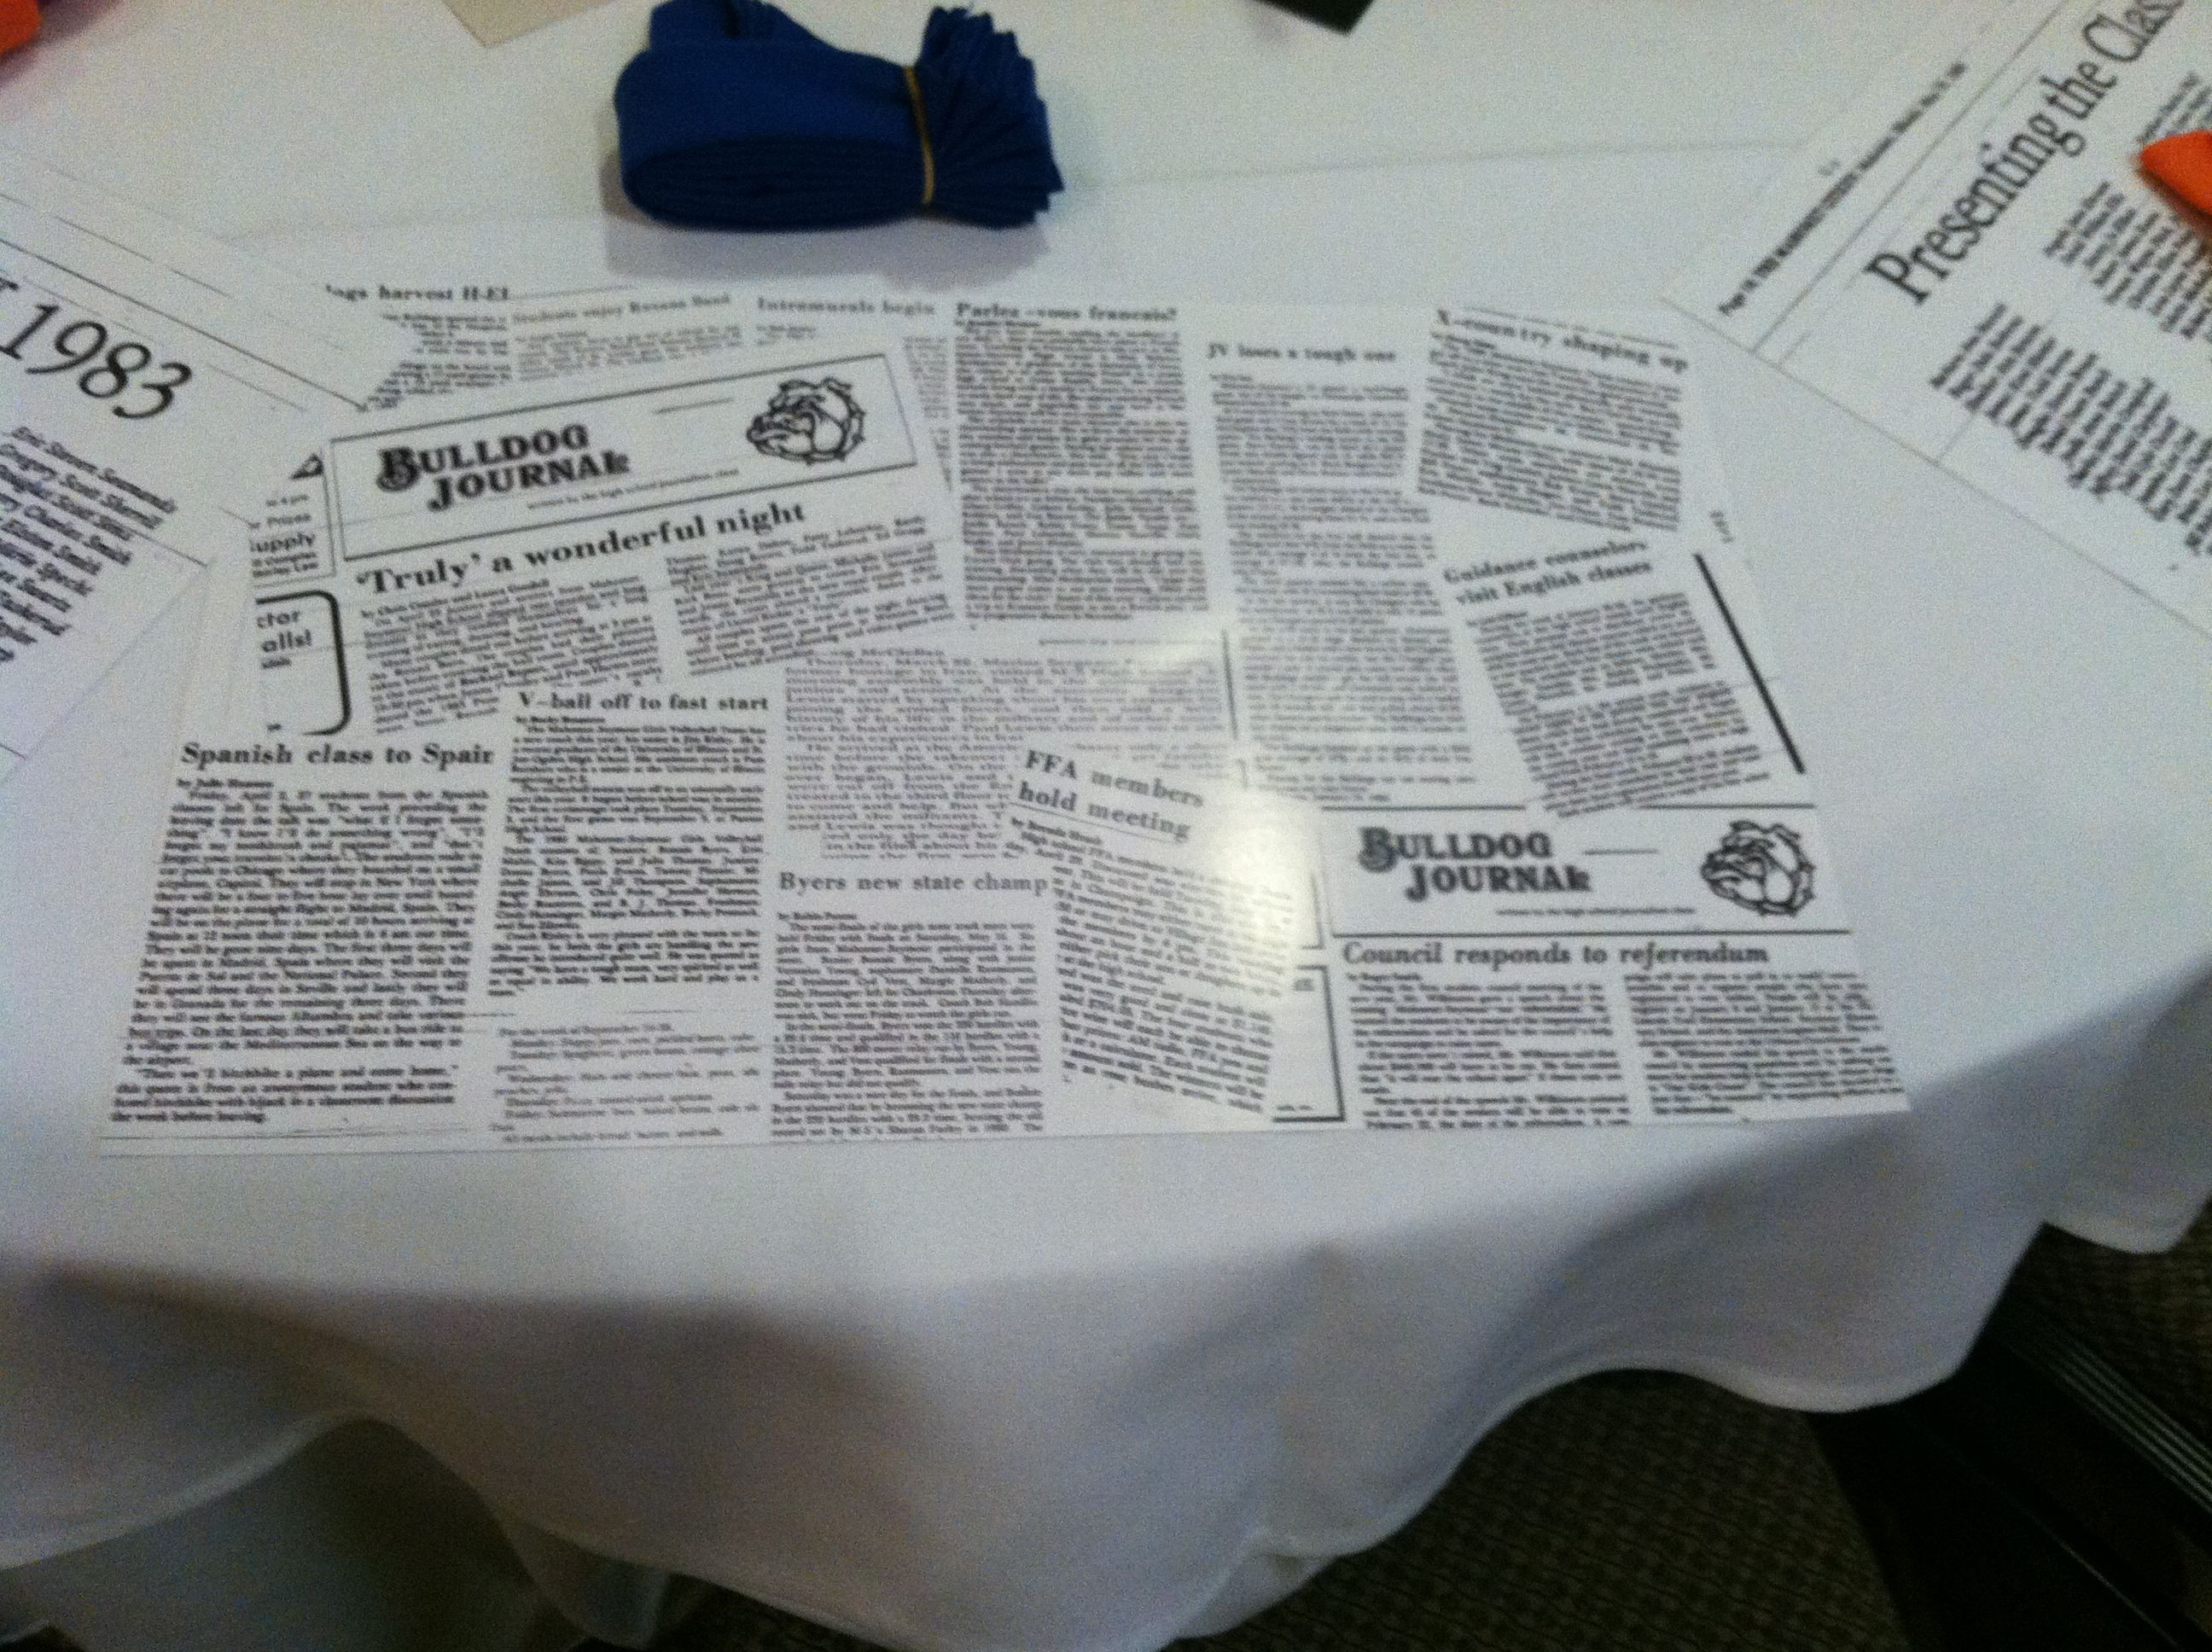 Placemats Are 11x17 Double Sided 110 I Believe Glossy Paper Looks Like Laminate Articles Ar High School Class Reunion High School Newspaper Class Reunion